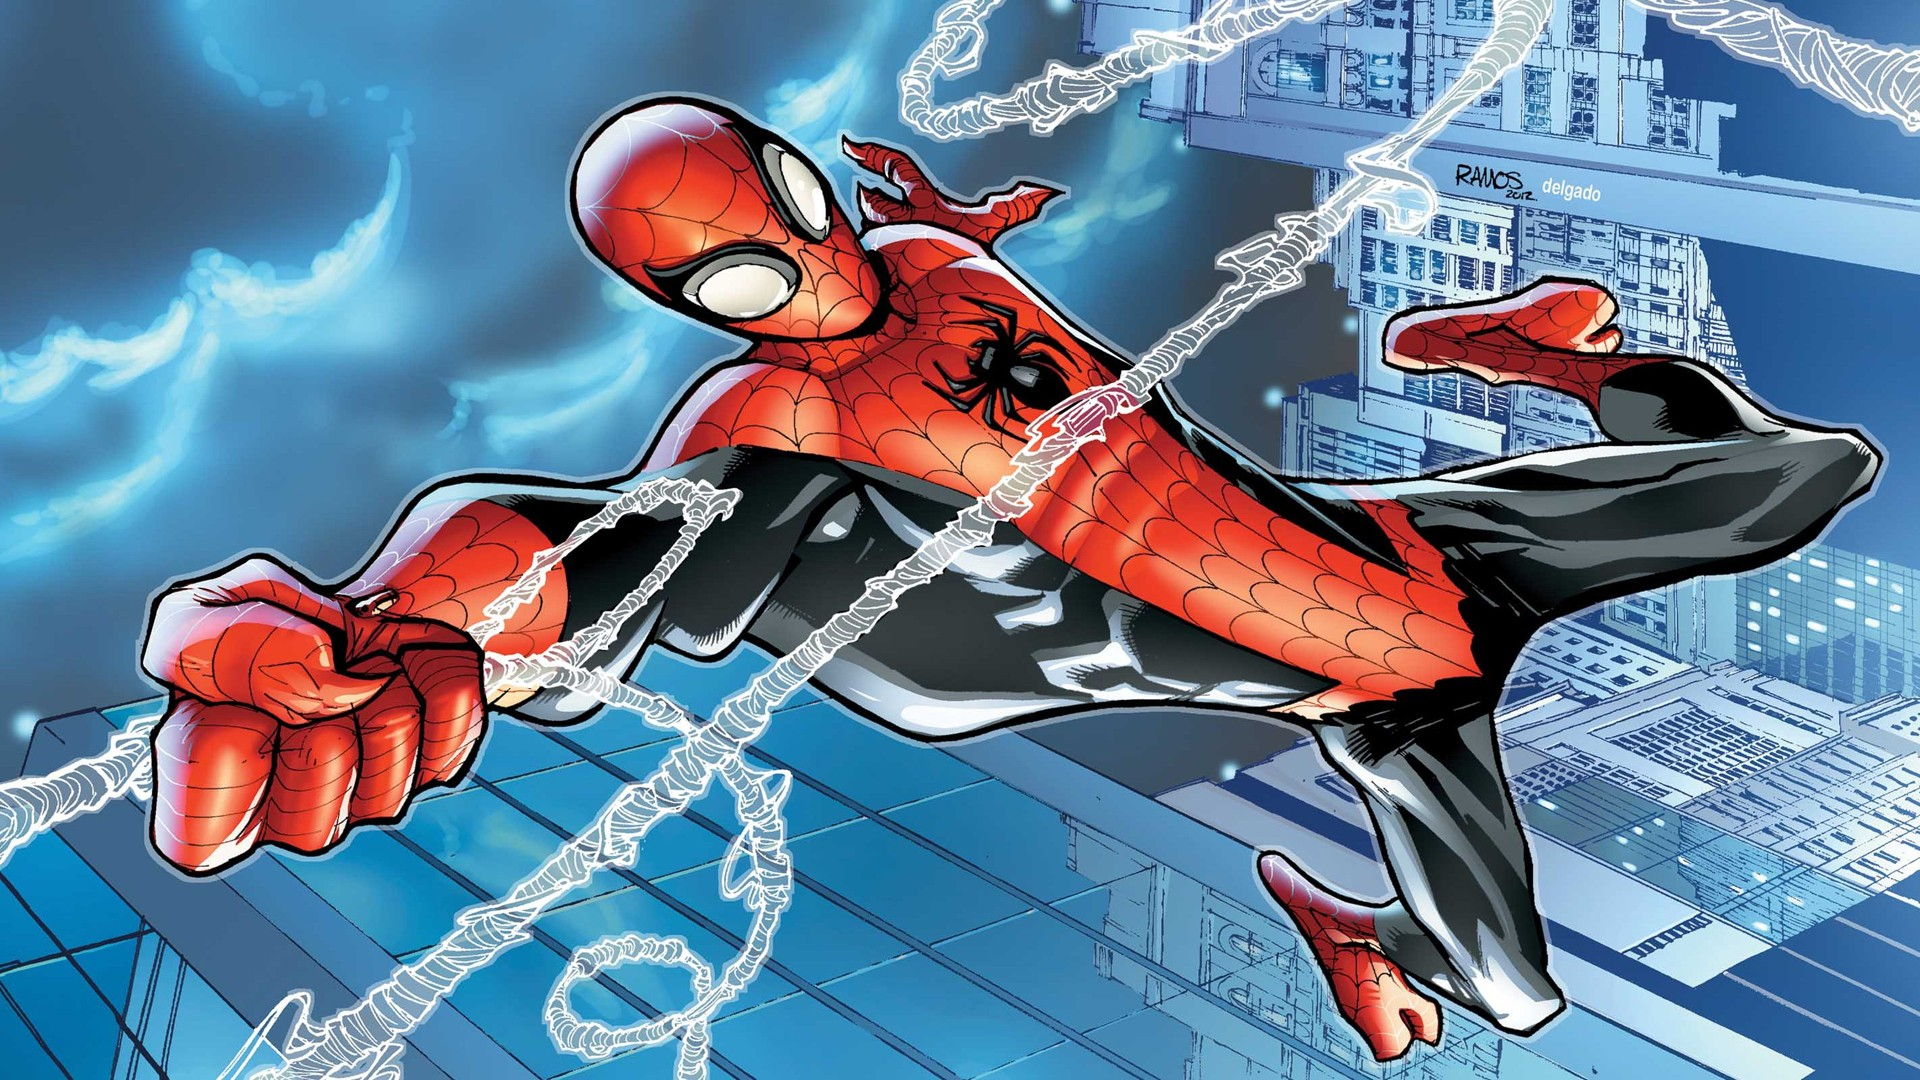 [Anglais] Critique de The Amazing Spider-Man 2